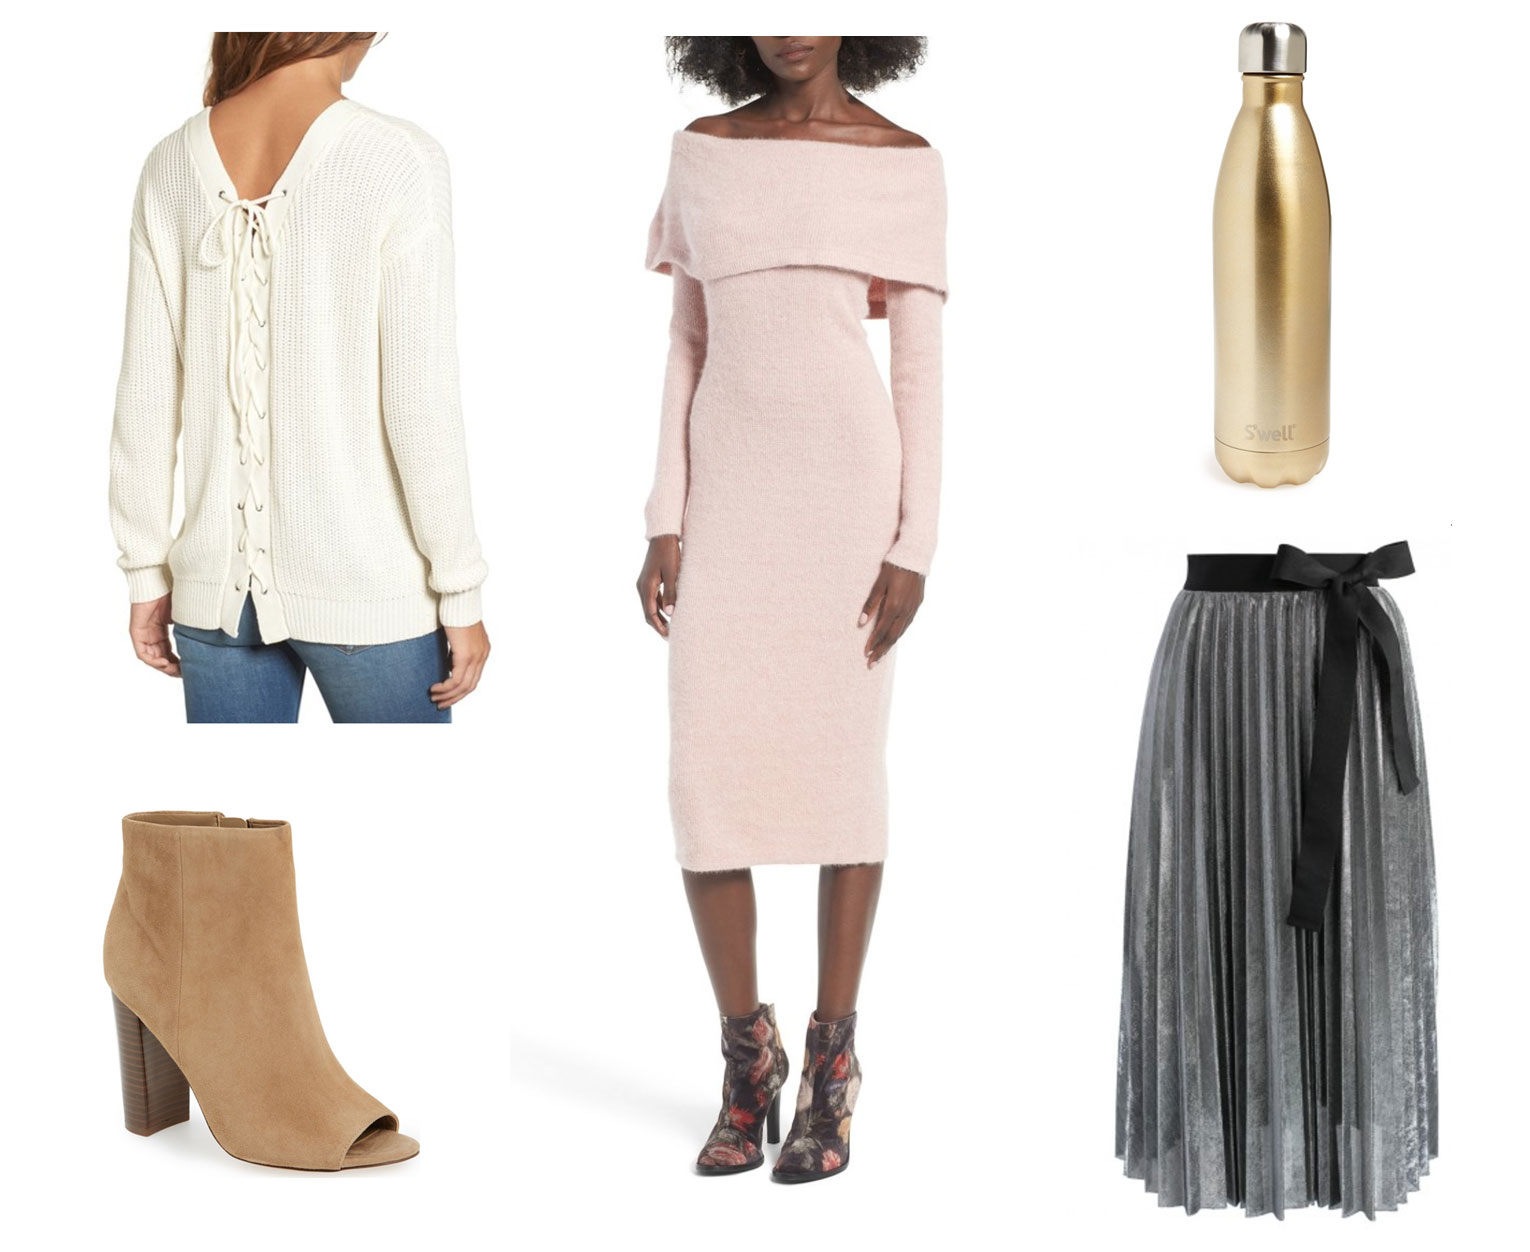 Off-the-shoulder sweater dress, champagne gold water bottle and more